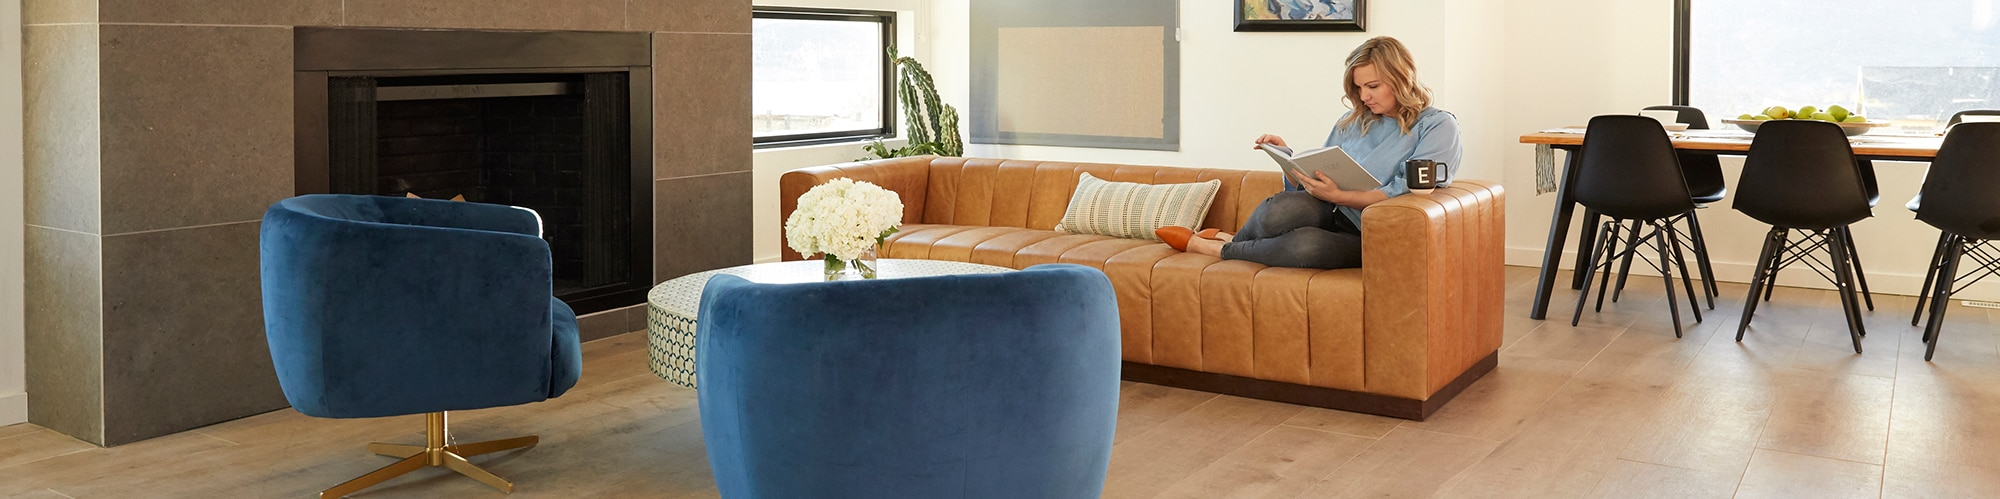 Open format living room with tiled floor and fireplace. Woman sitting on couch reading a book